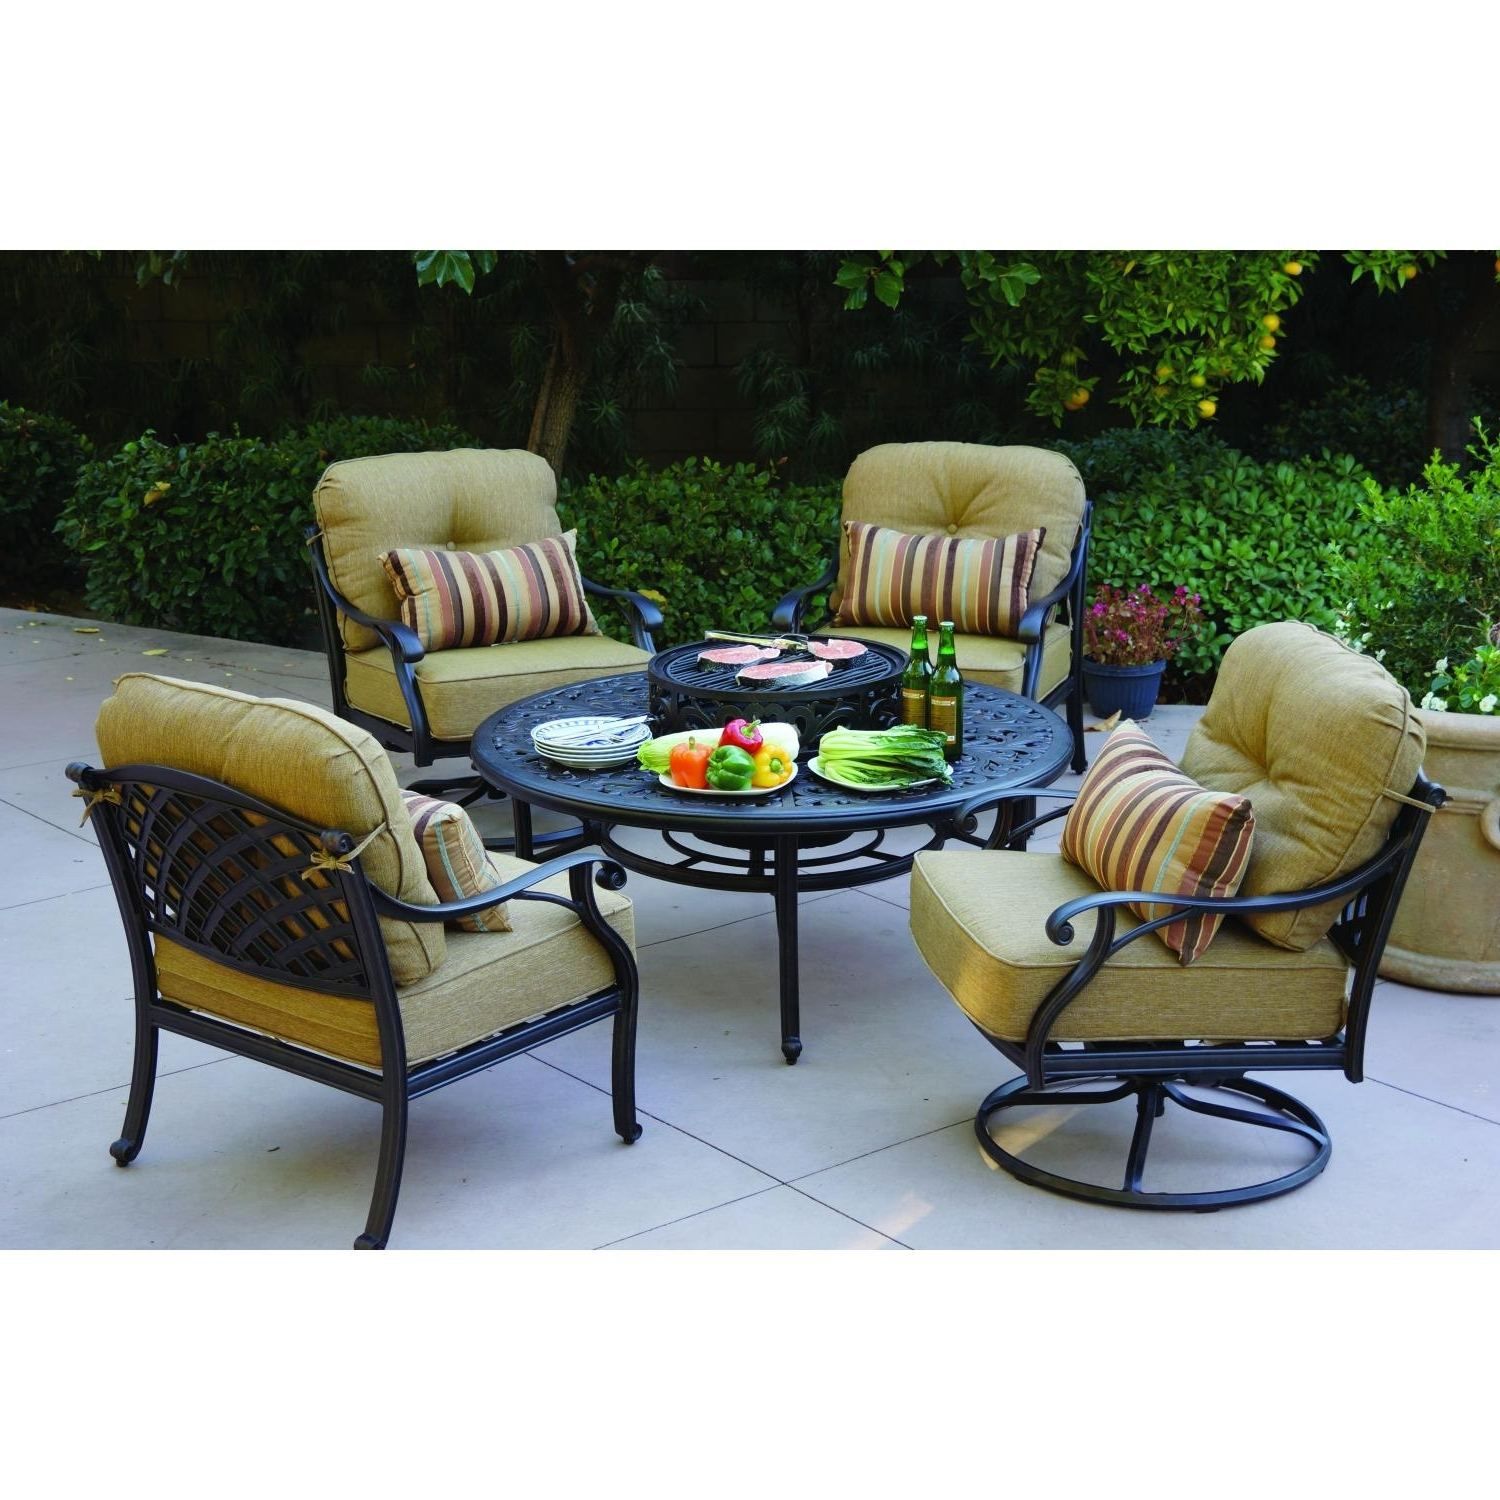 Trendy Round Patio Conversation Sets With Regard To Beautiful Round Propane Fire Pit Table And Chairs Conversation Sets (View 14 of 15)